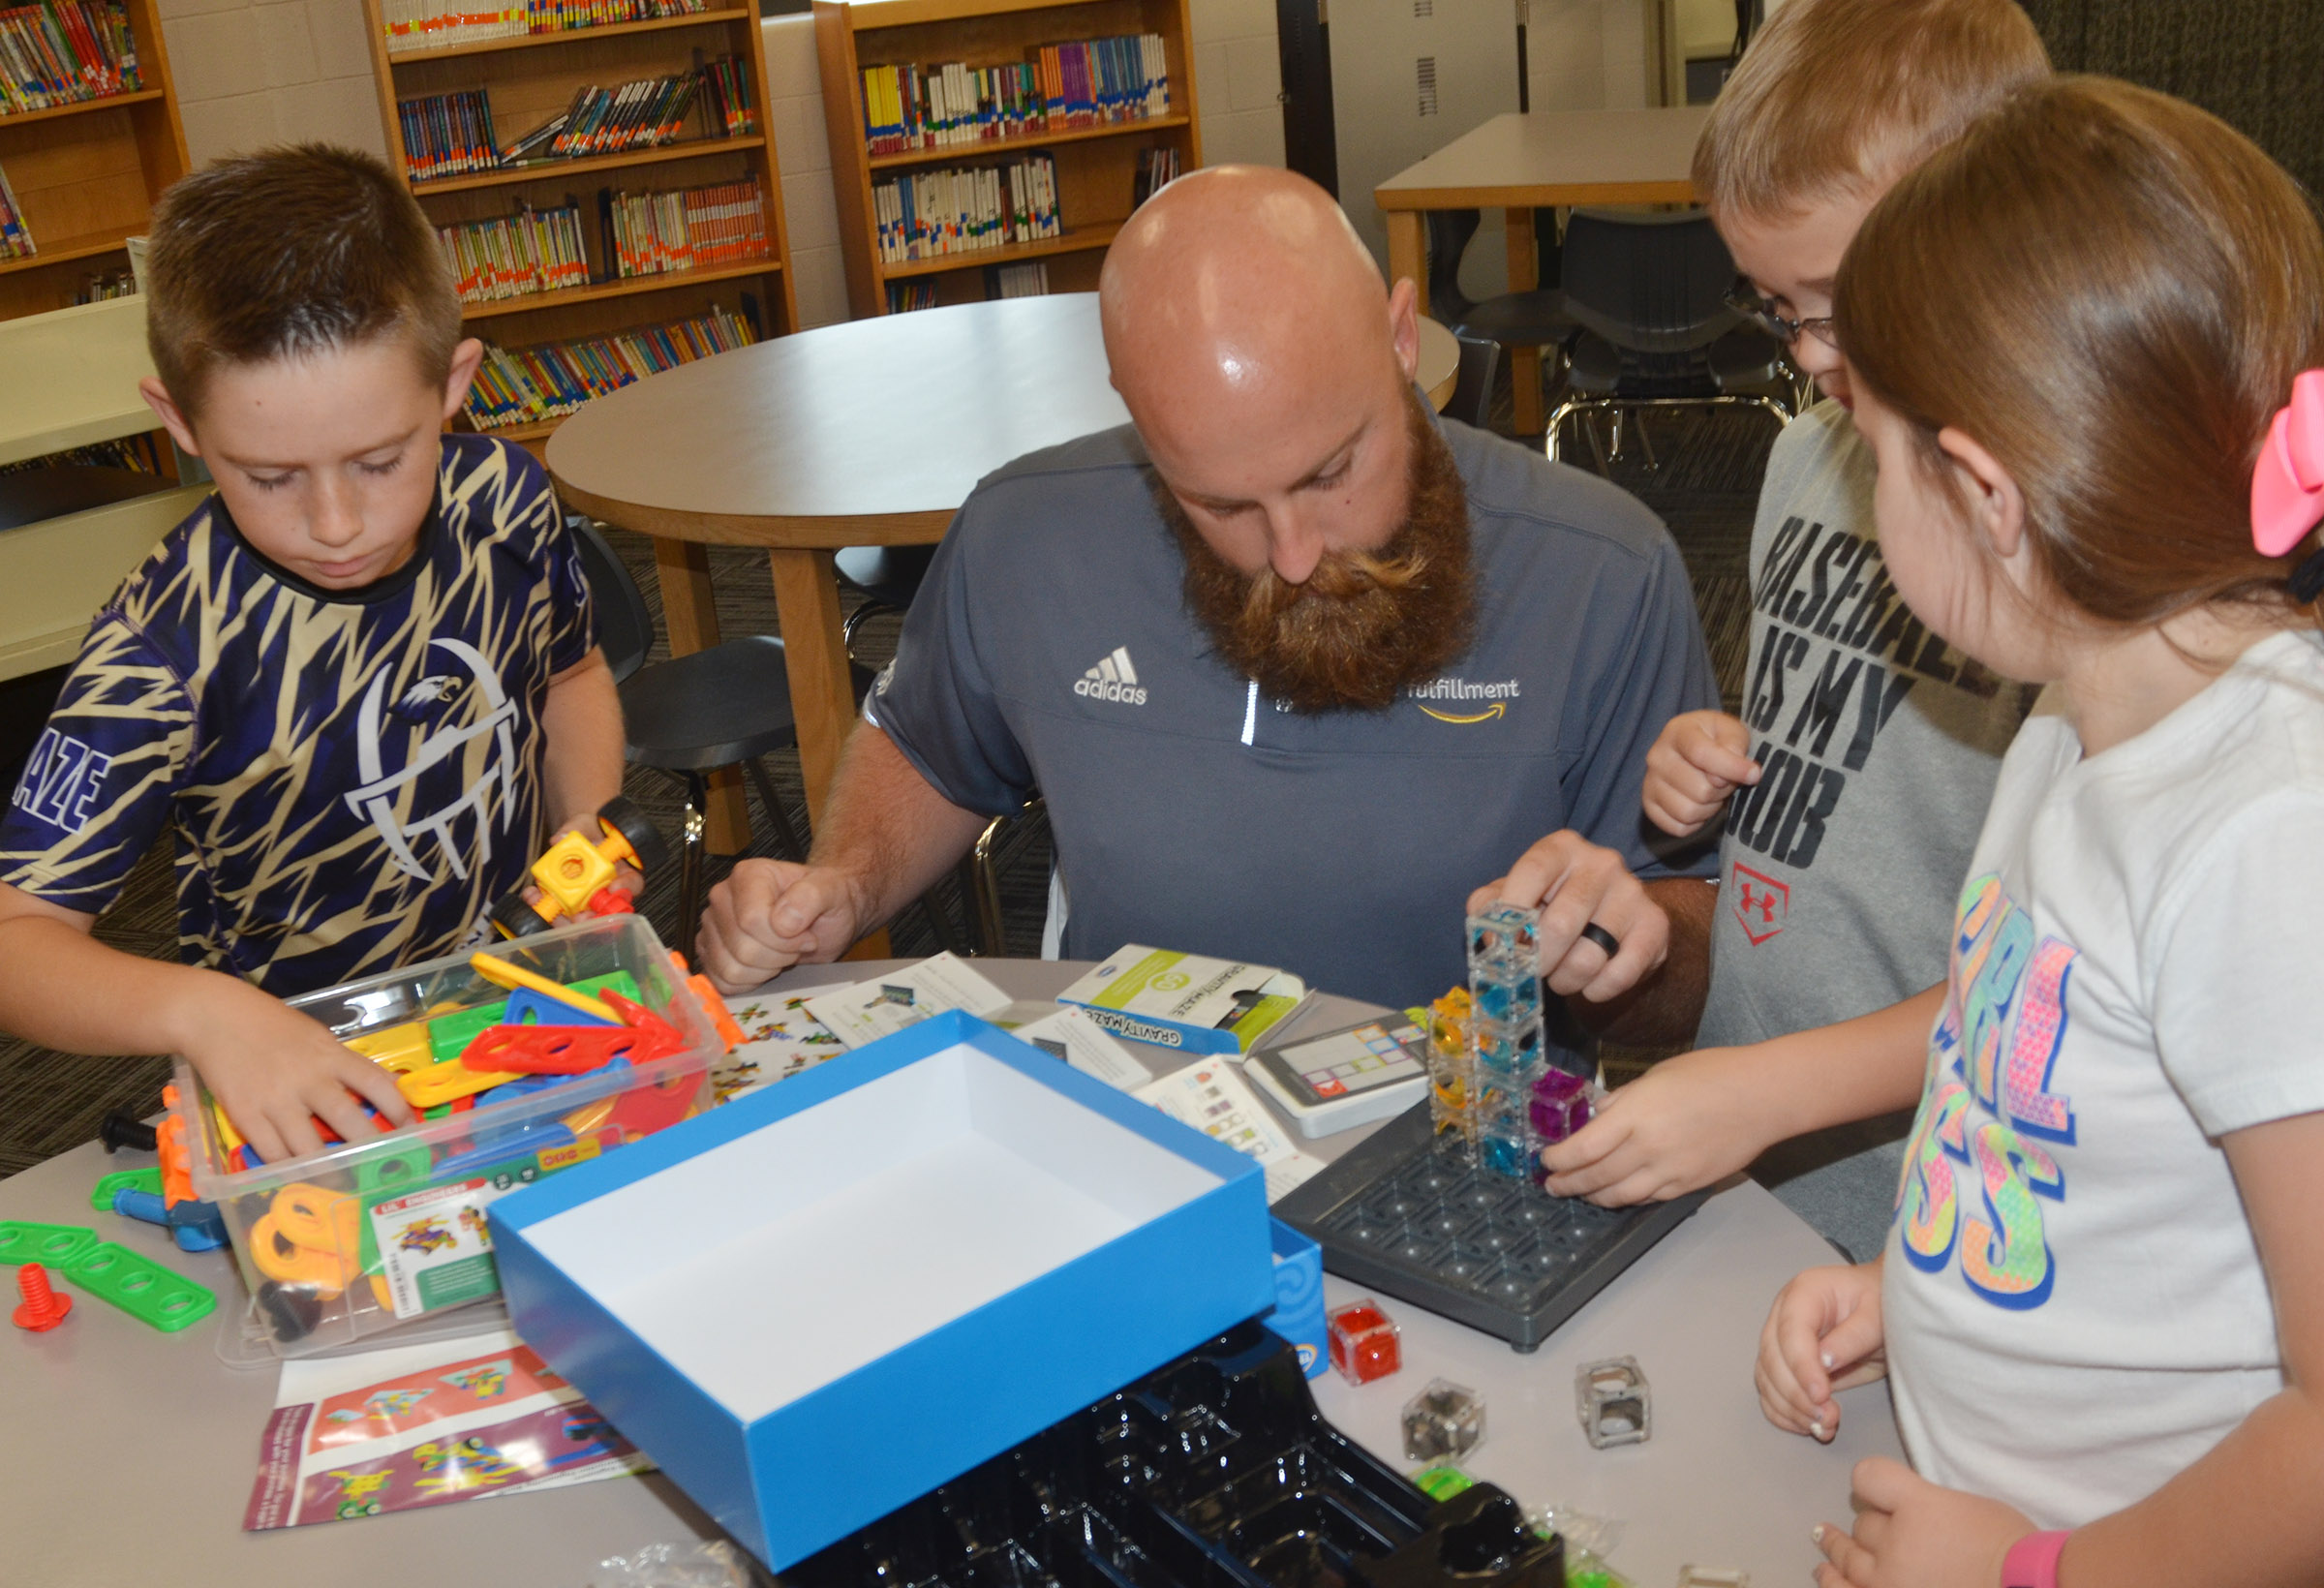 Chad Forsyth, an operations manager at Amazon, plays with STEM toys with, from left, third-grader Lanigan Price and fourth-graders Cameron Estes and Maylee Wilds.